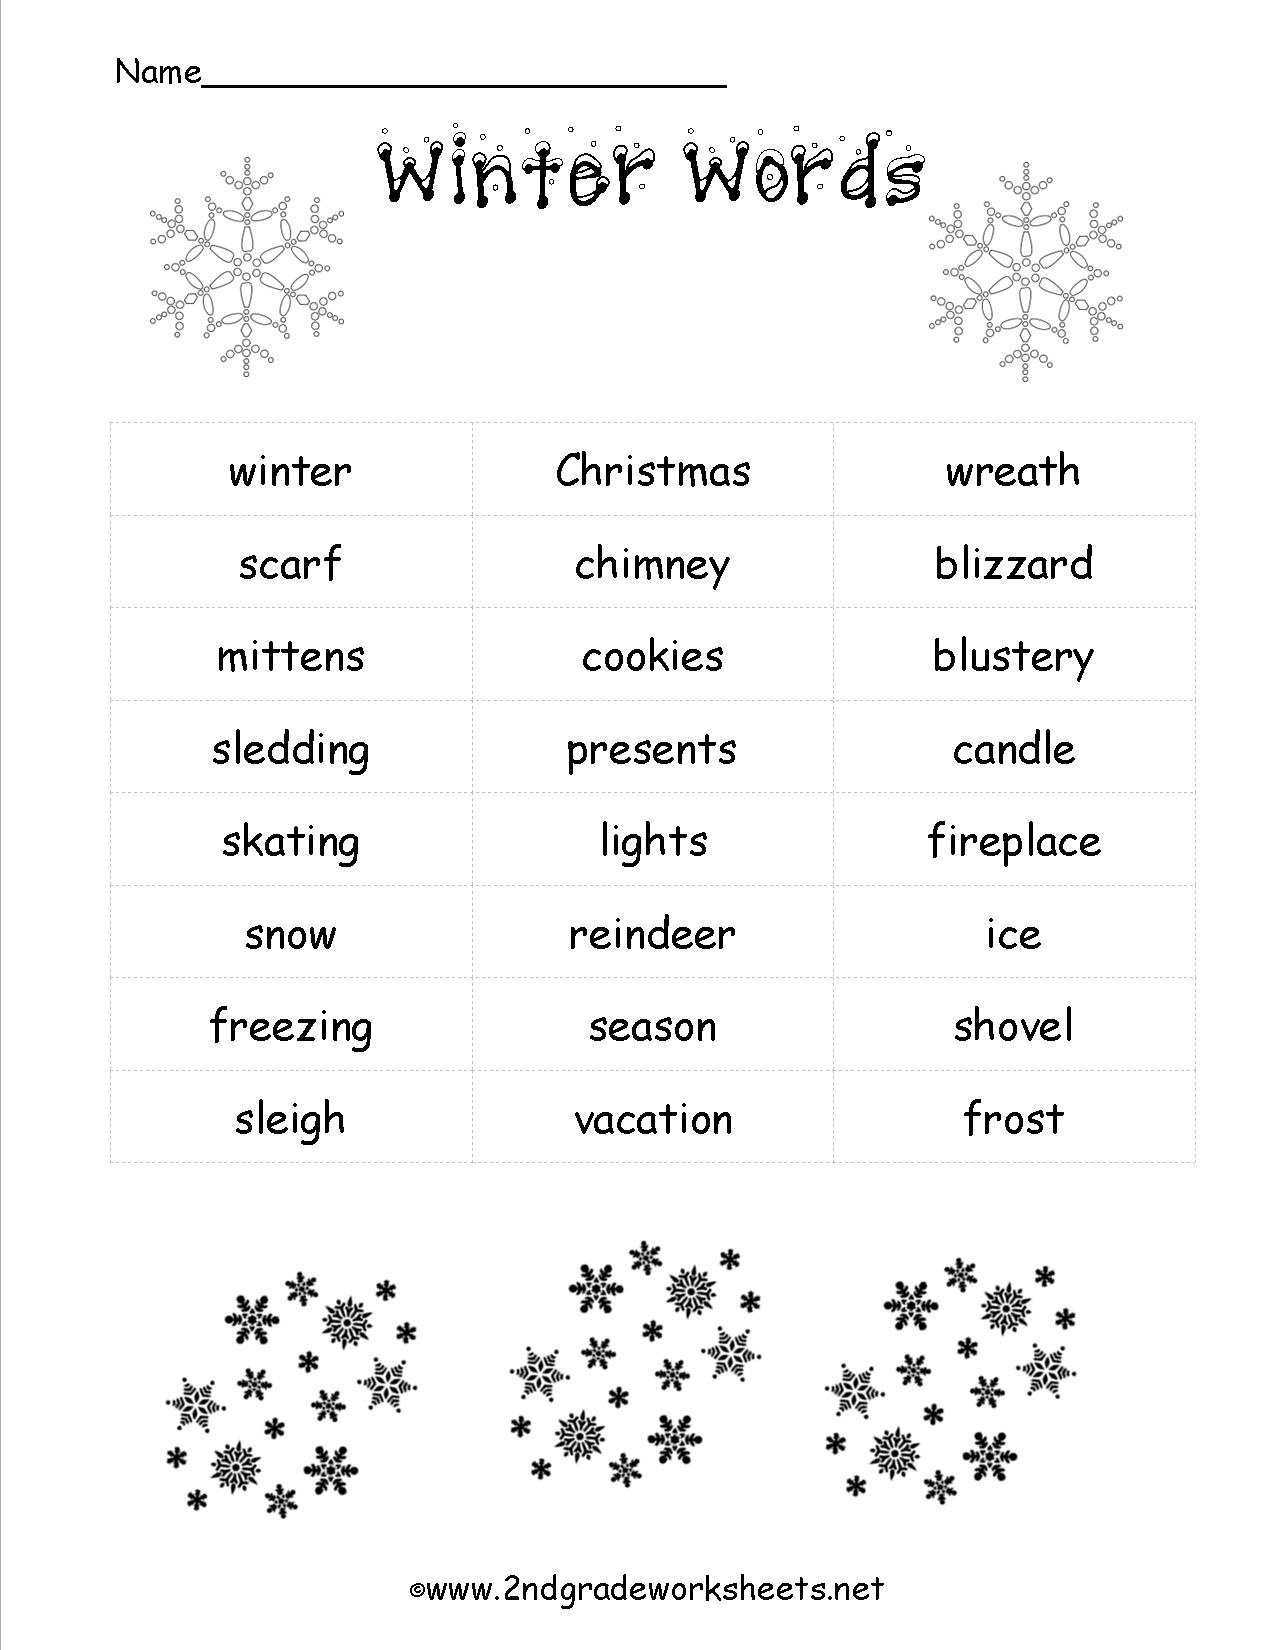 Christmas Worksheets And Printouts - Free Printable Christmas Worksheets For Third Grade